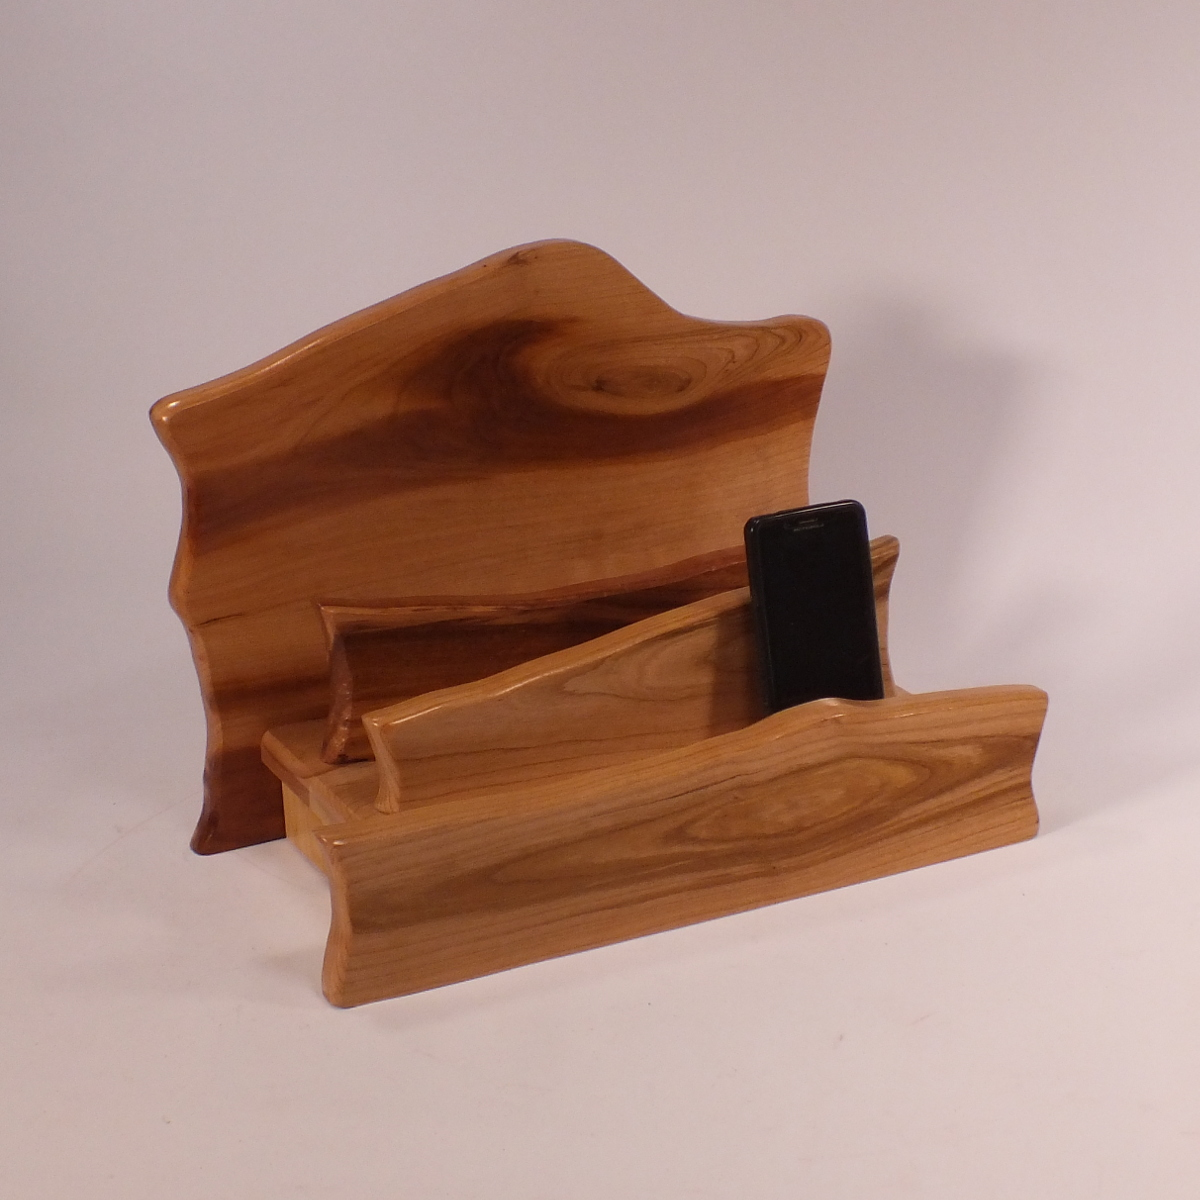 sq daig phone WB 2-tb-knotty-ch-semo-1-5-17 charging-station-tech-tamer-woodworks.Jpg